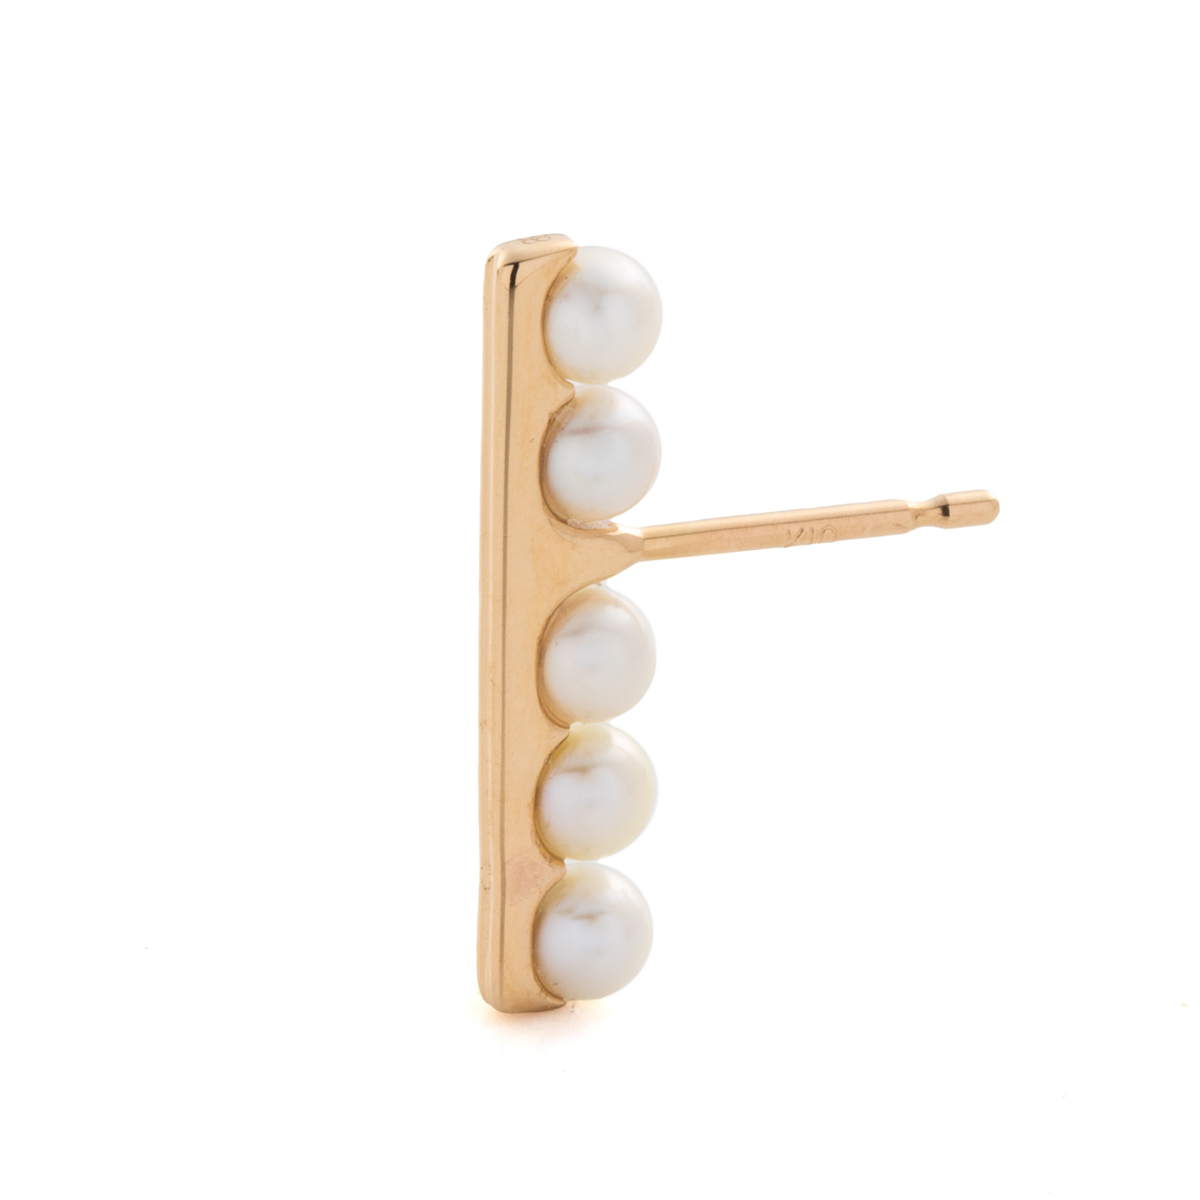 【NEW】Beluga Pearl Earring PE67KPE NEW ベルーガ akoya パール ピアス